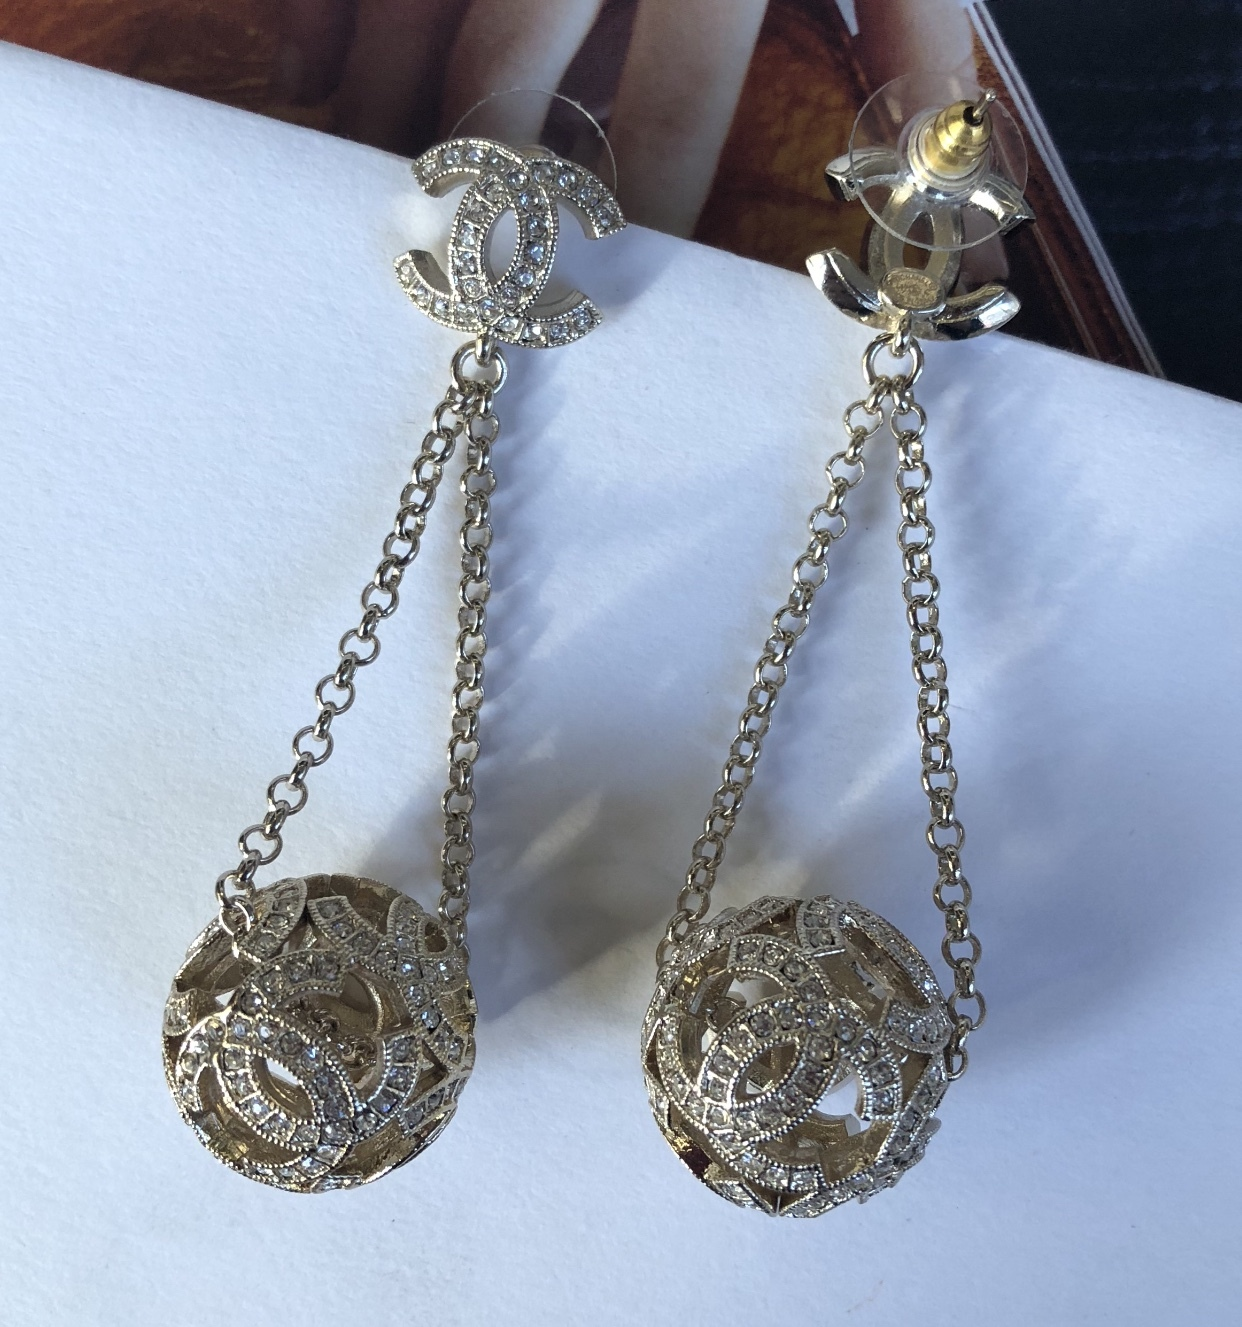 100% AUTH CHANEL 2017 LIMITED EDITION CRYSTAL CC GALAXY DROP DANGLE EARRINGS